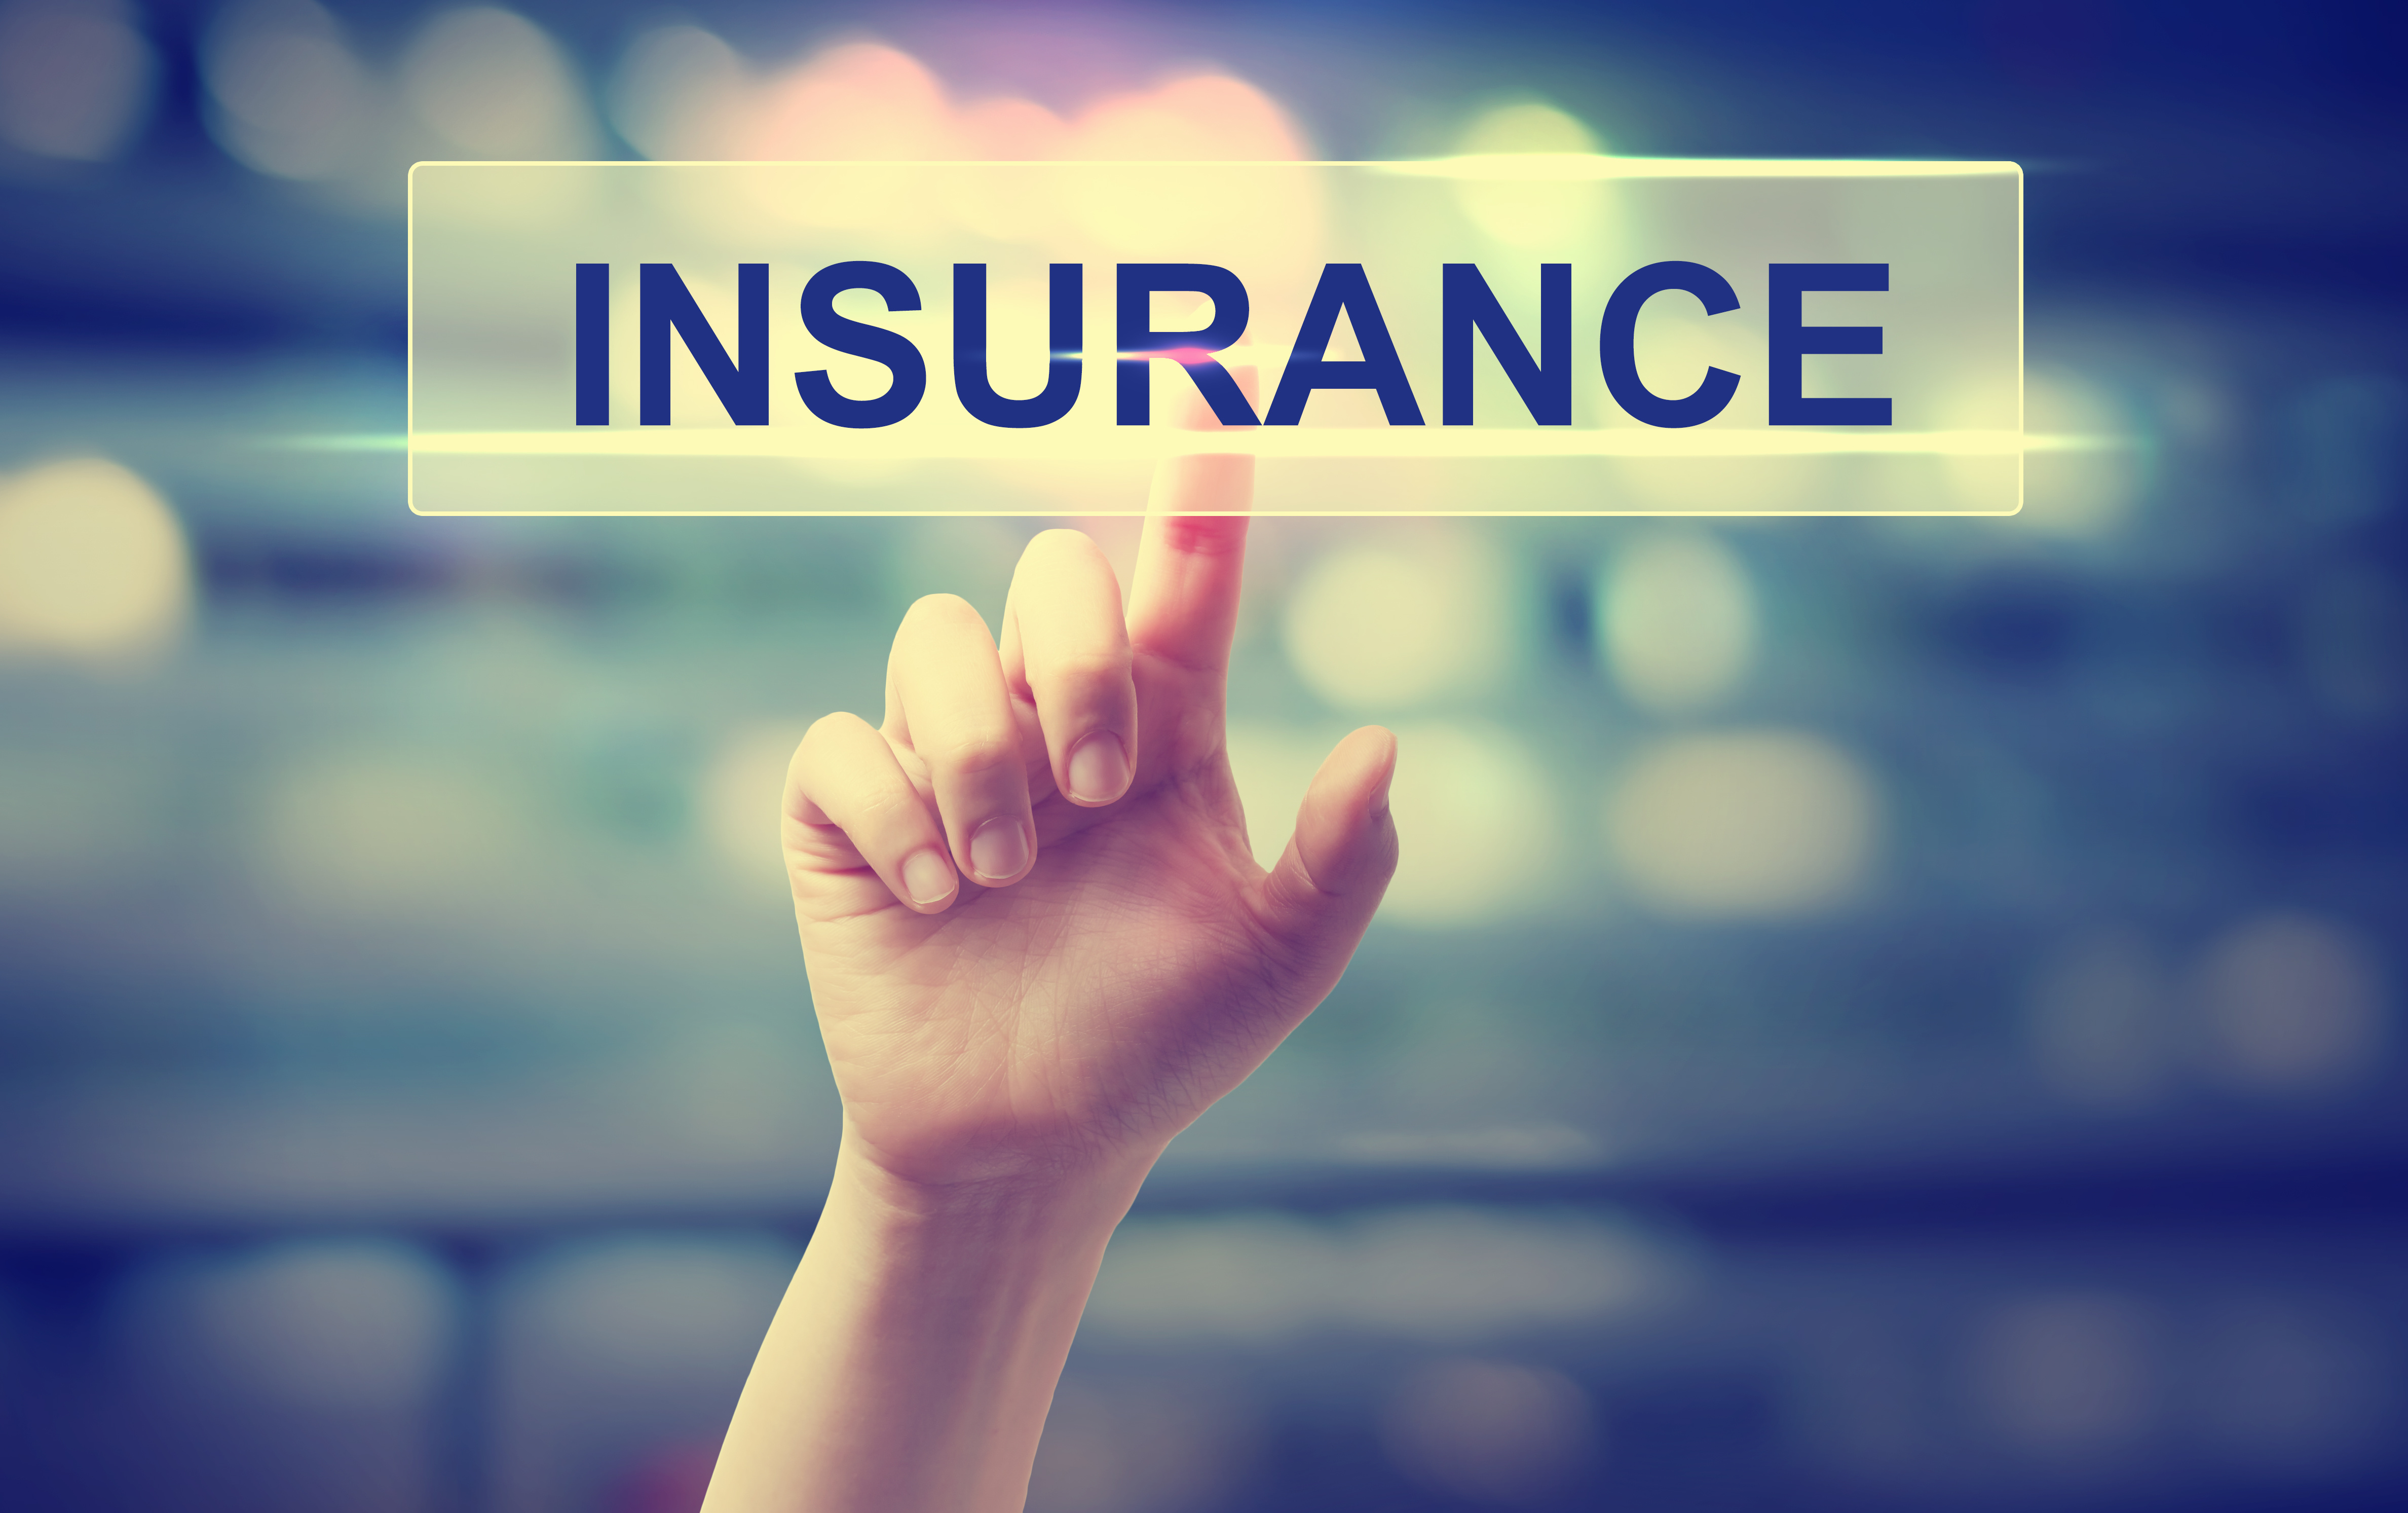 Hand clicking on insurance options